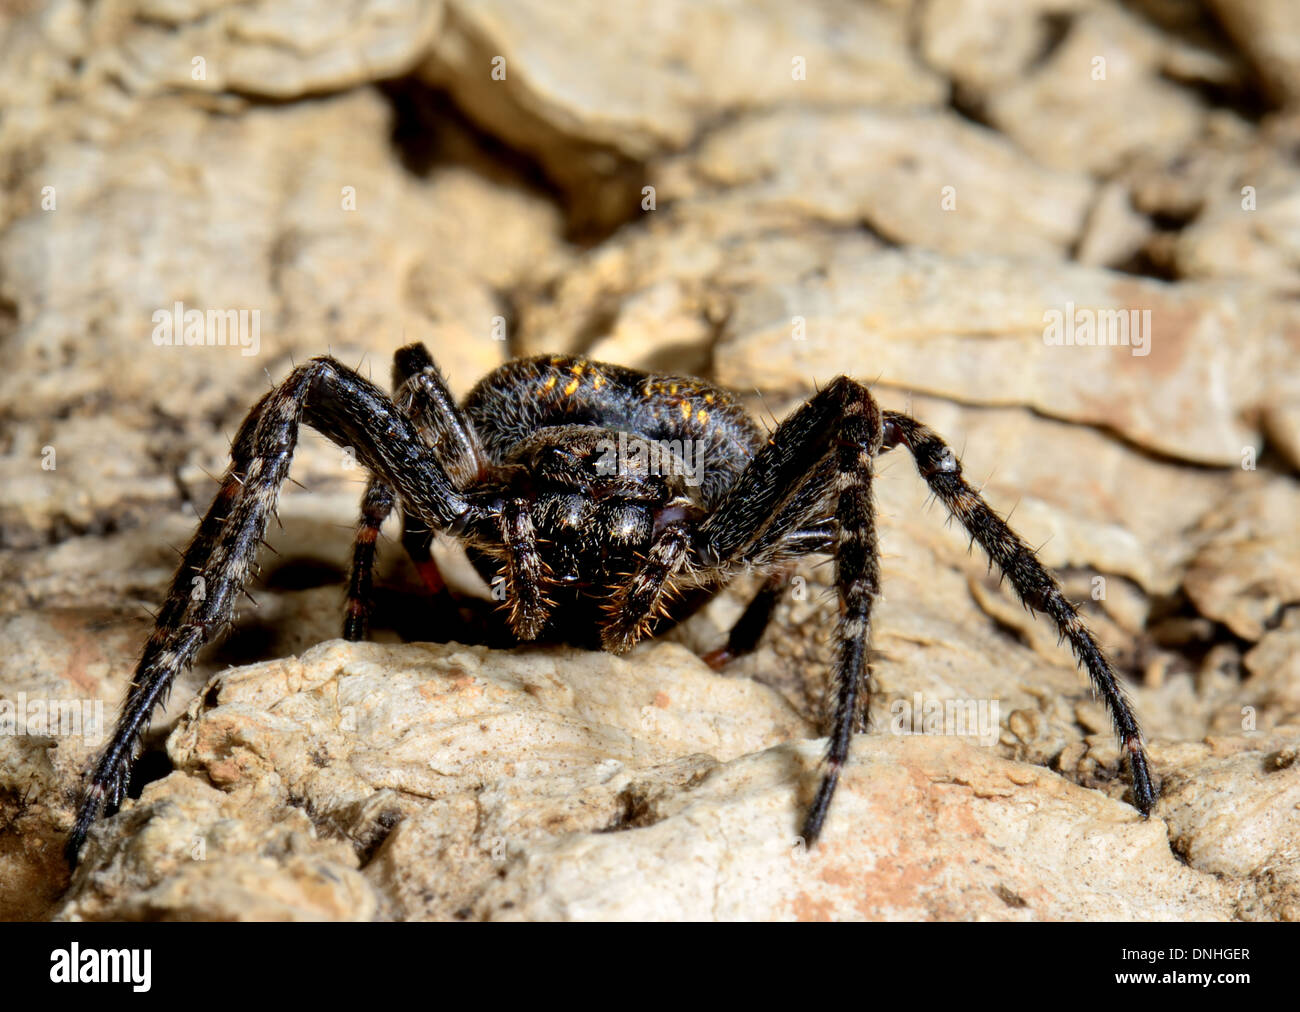 Walnut Orb spider or Evening spider, Nuctenea umbratica. Essex UK - Stock Image